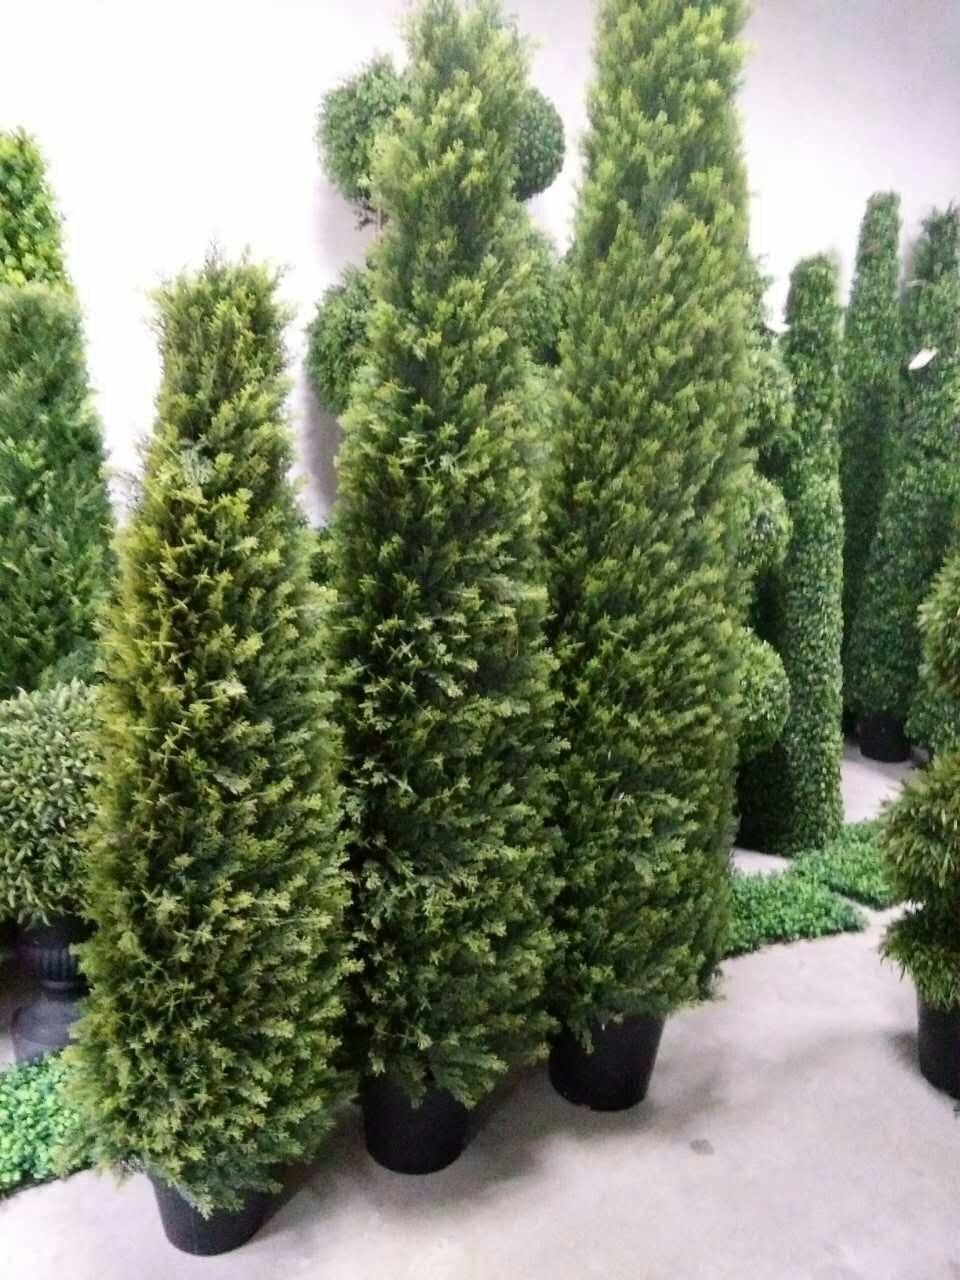 Artificial Plants and Flowers of Boxwood Tree Gu828296544